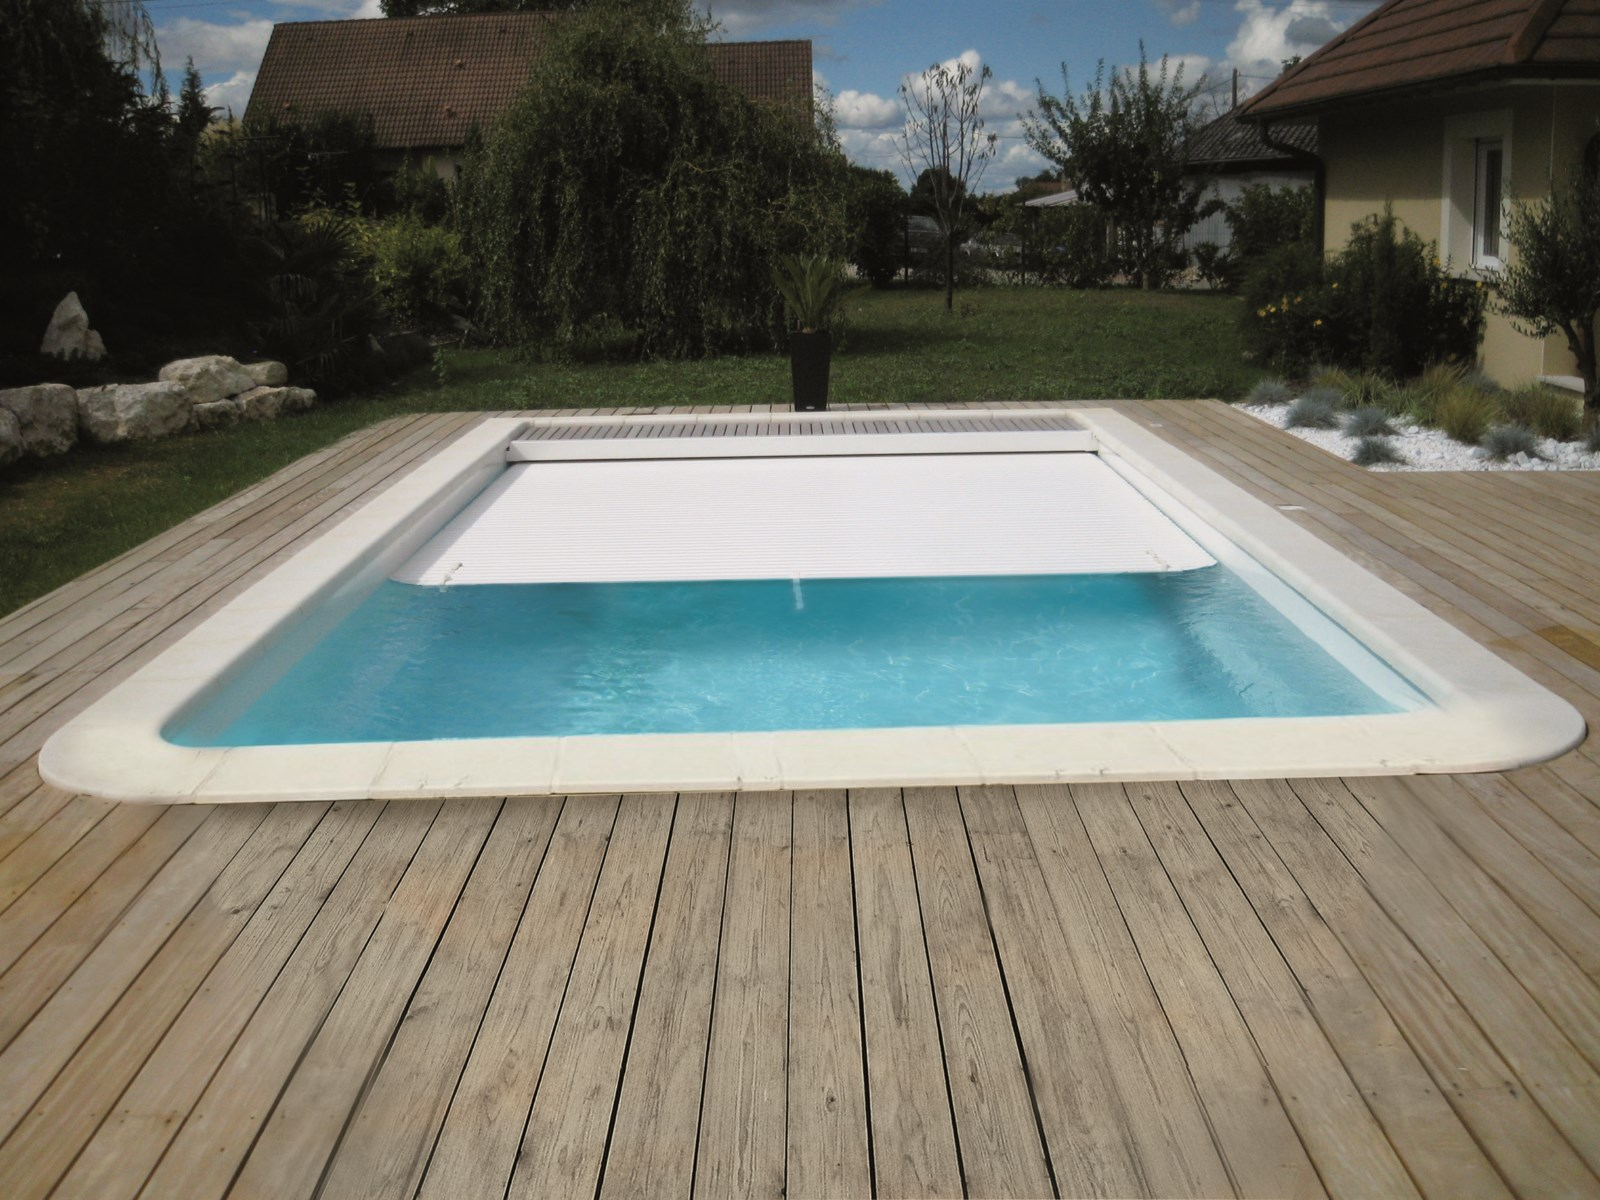 Piscine coque polyester rectangulaire mod le born o avec for Coque piscine polyester